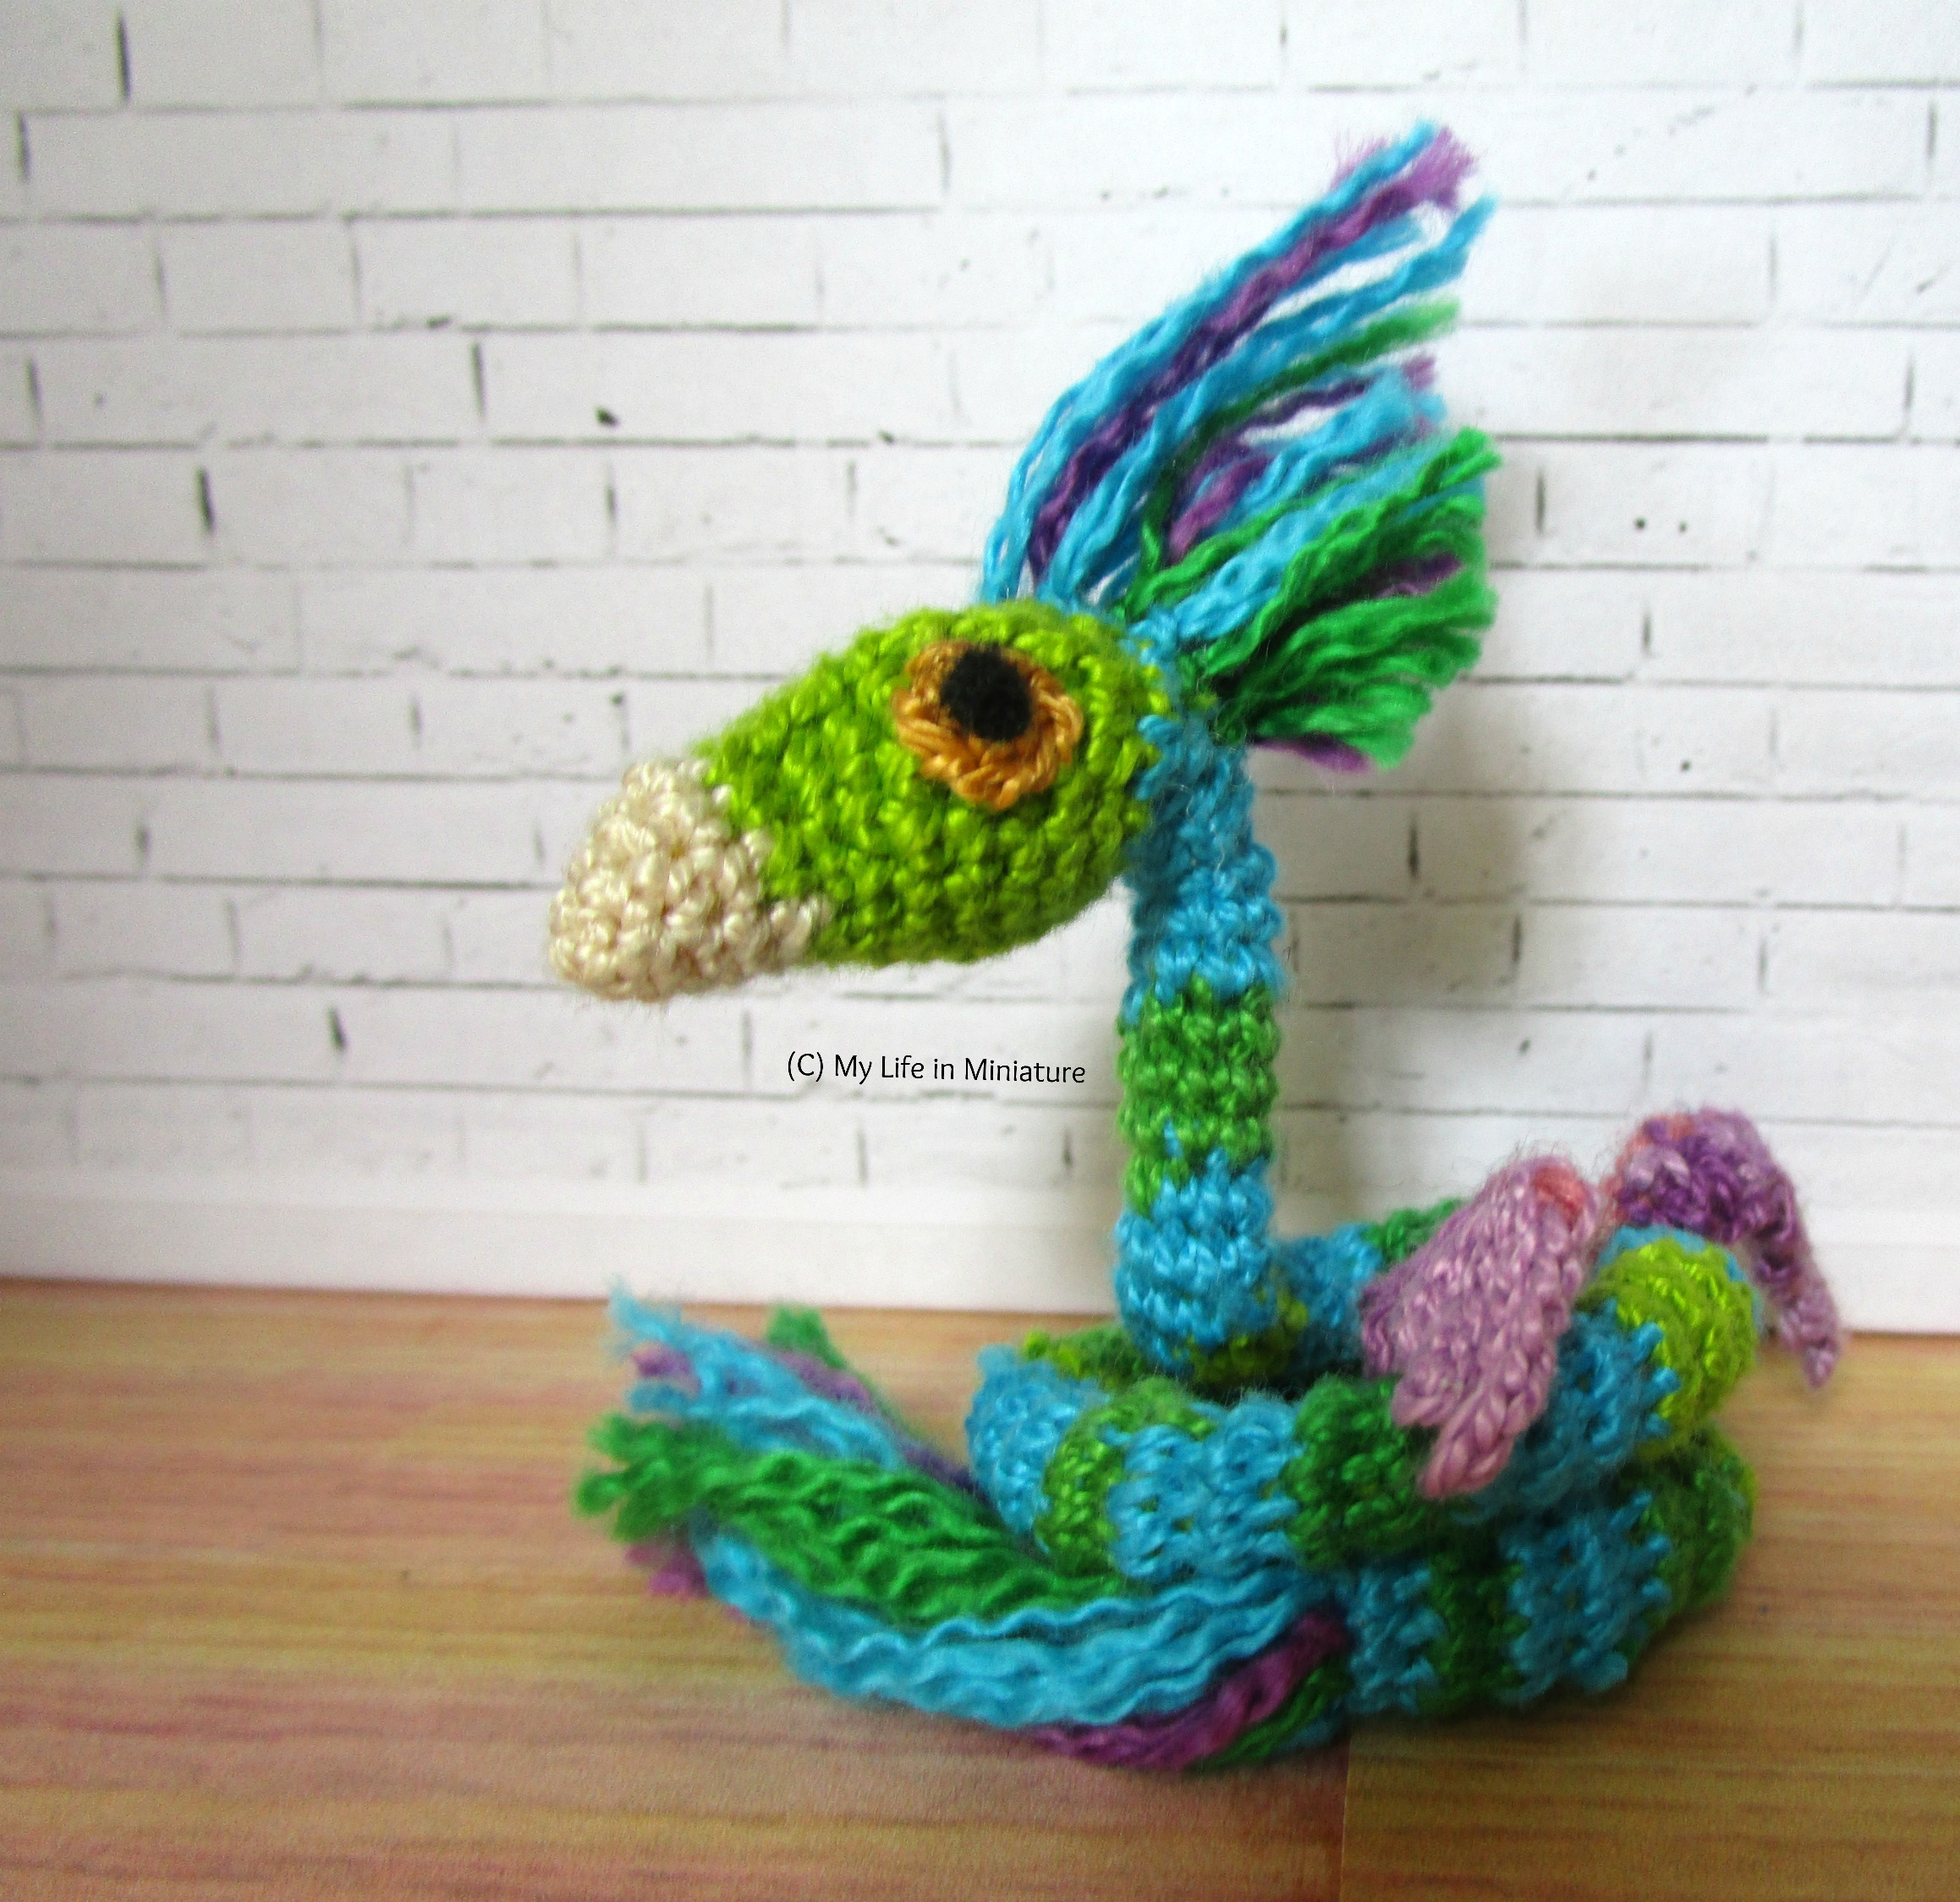 A crocheted occamy sits coiled up against a white brick background. It's a fantasy creature, a lot like a snake with wings and a birds' head. This one is various shades of blue and green with pale purple wings.